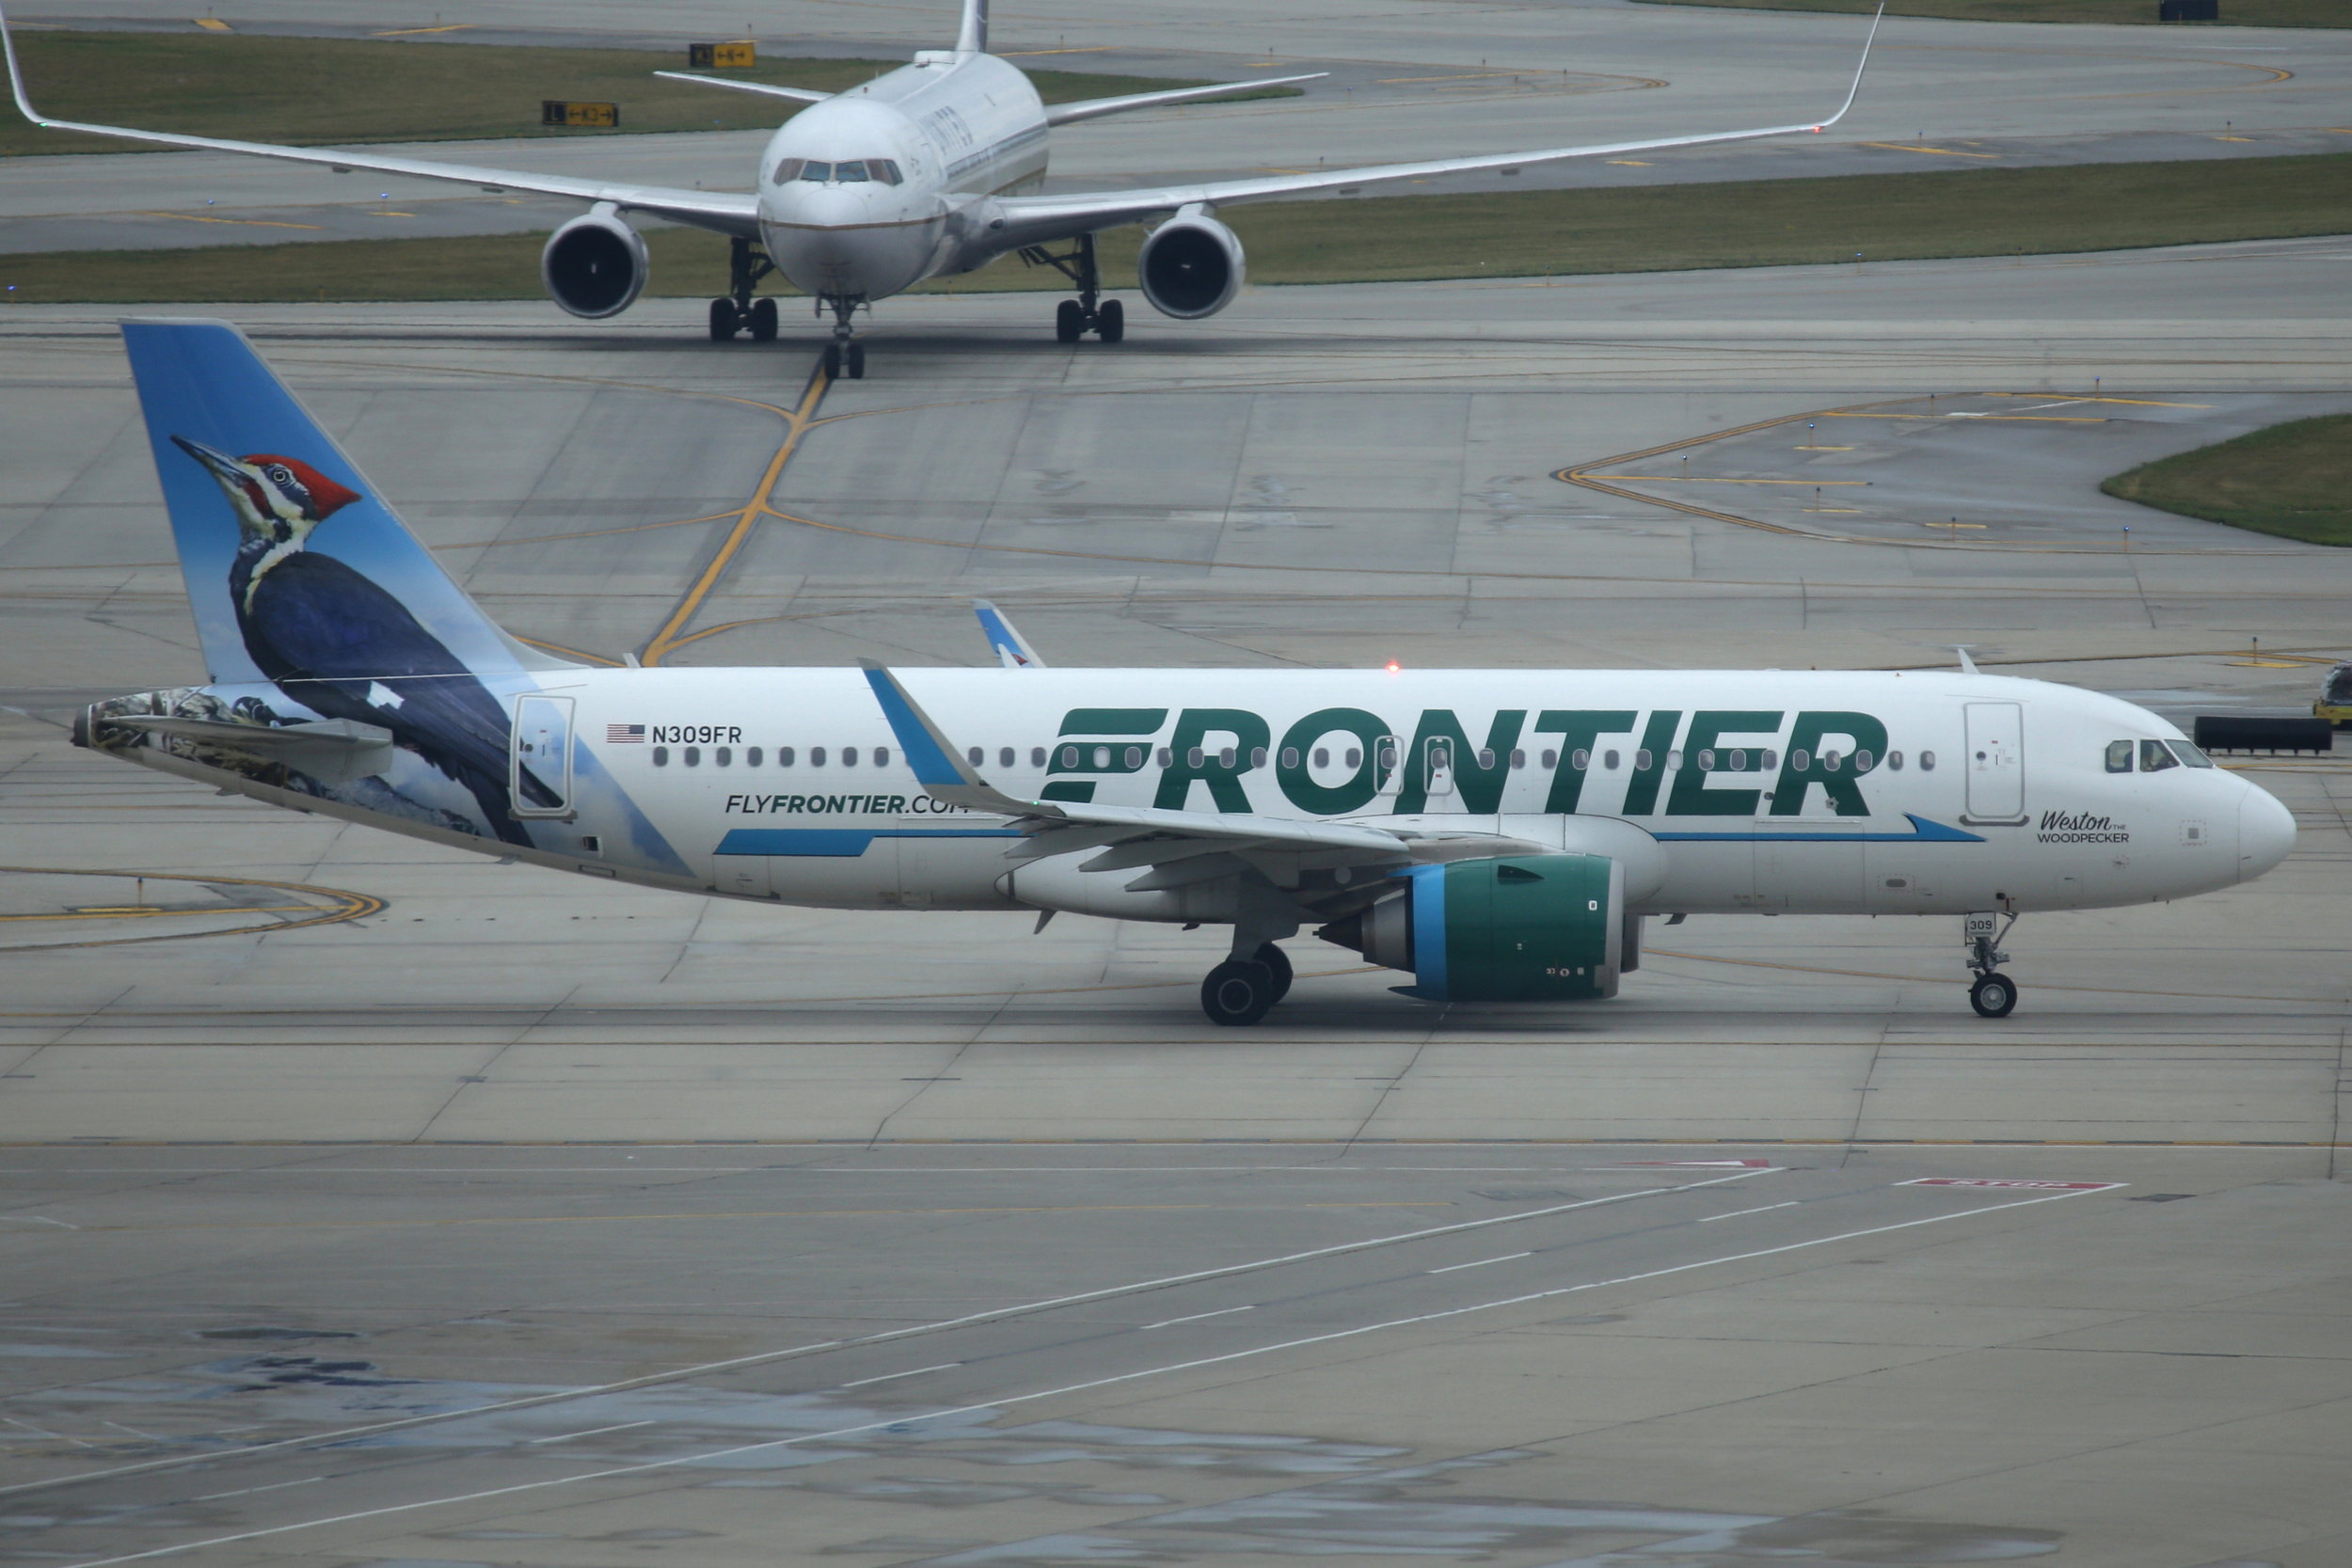 N309FR Frontier A320 taken from Hilton Hotel at Chicago O'Hare Airport 21st July by John Wood